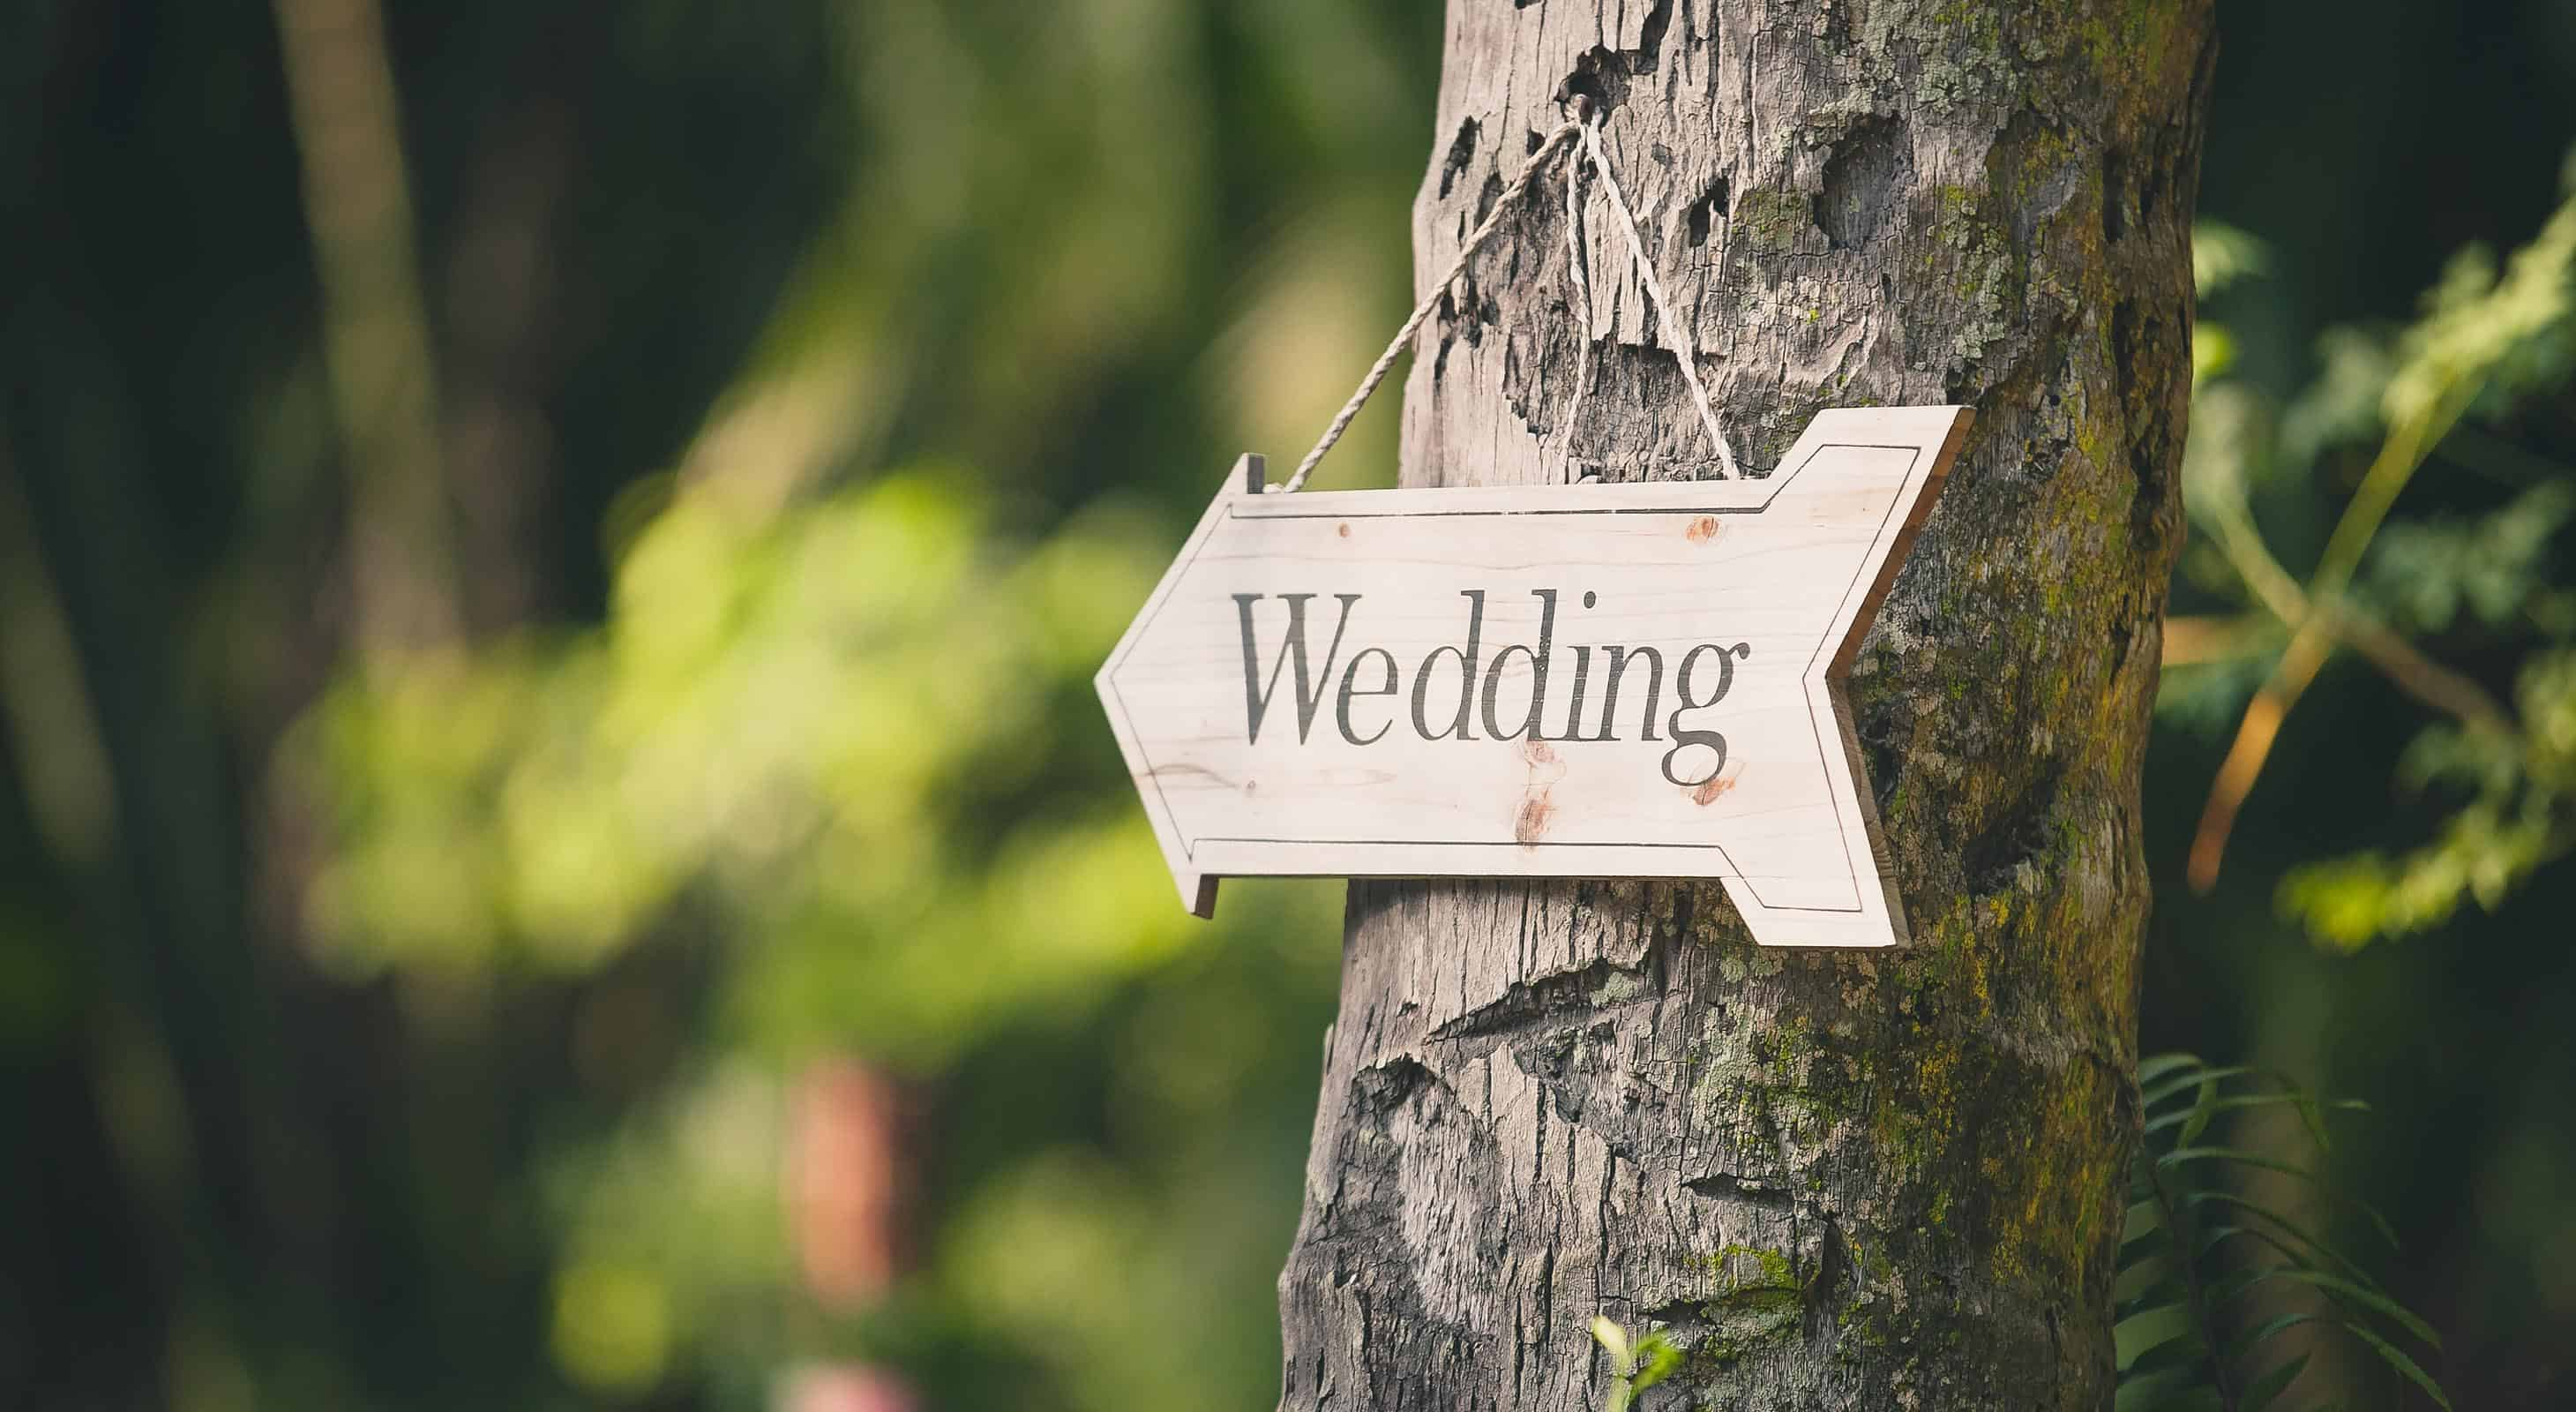 Wedding written on a wooden sign on a tree